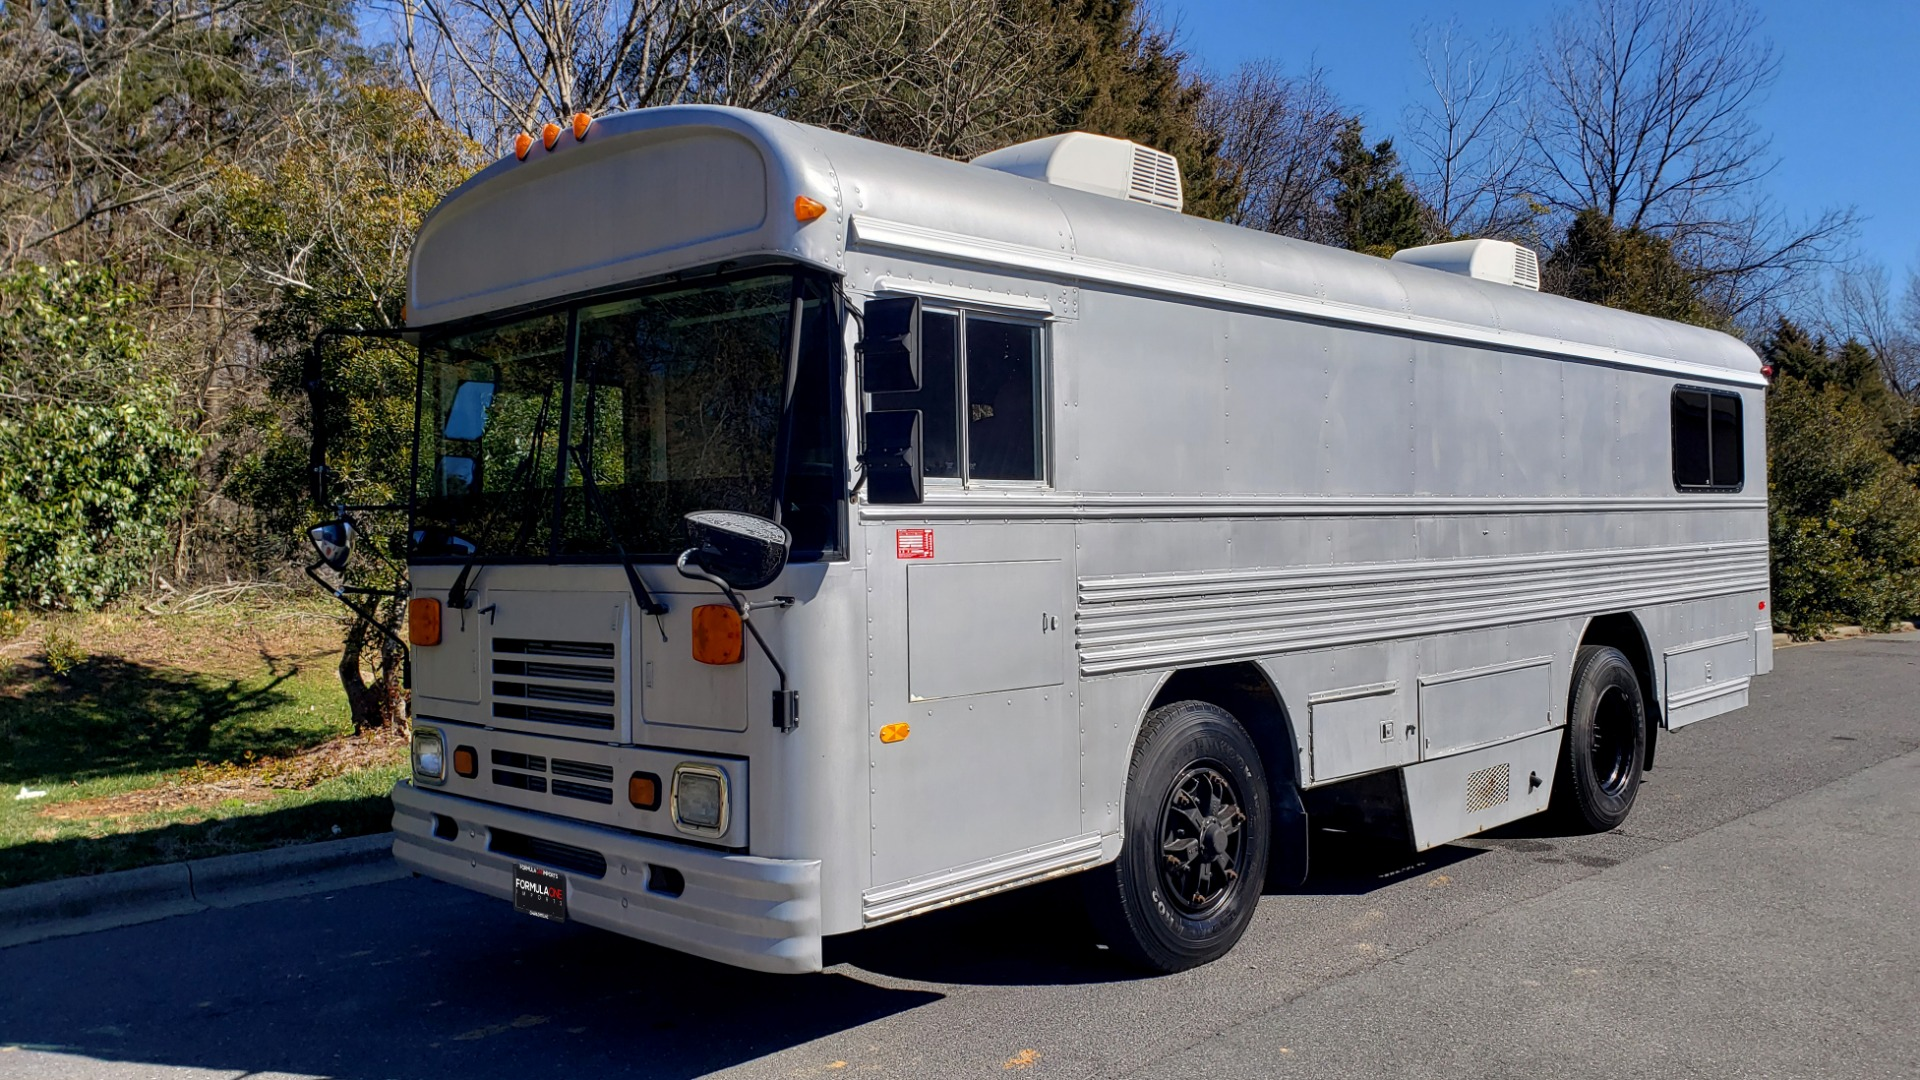 Used 1993 Chevrolet BLUEBIRD SCHOOL BUS 30' / CUMMINS DIESEL / AIR / GENERATOR for sale $35,000 at Formula Imports in Charlotte NC 28227 1